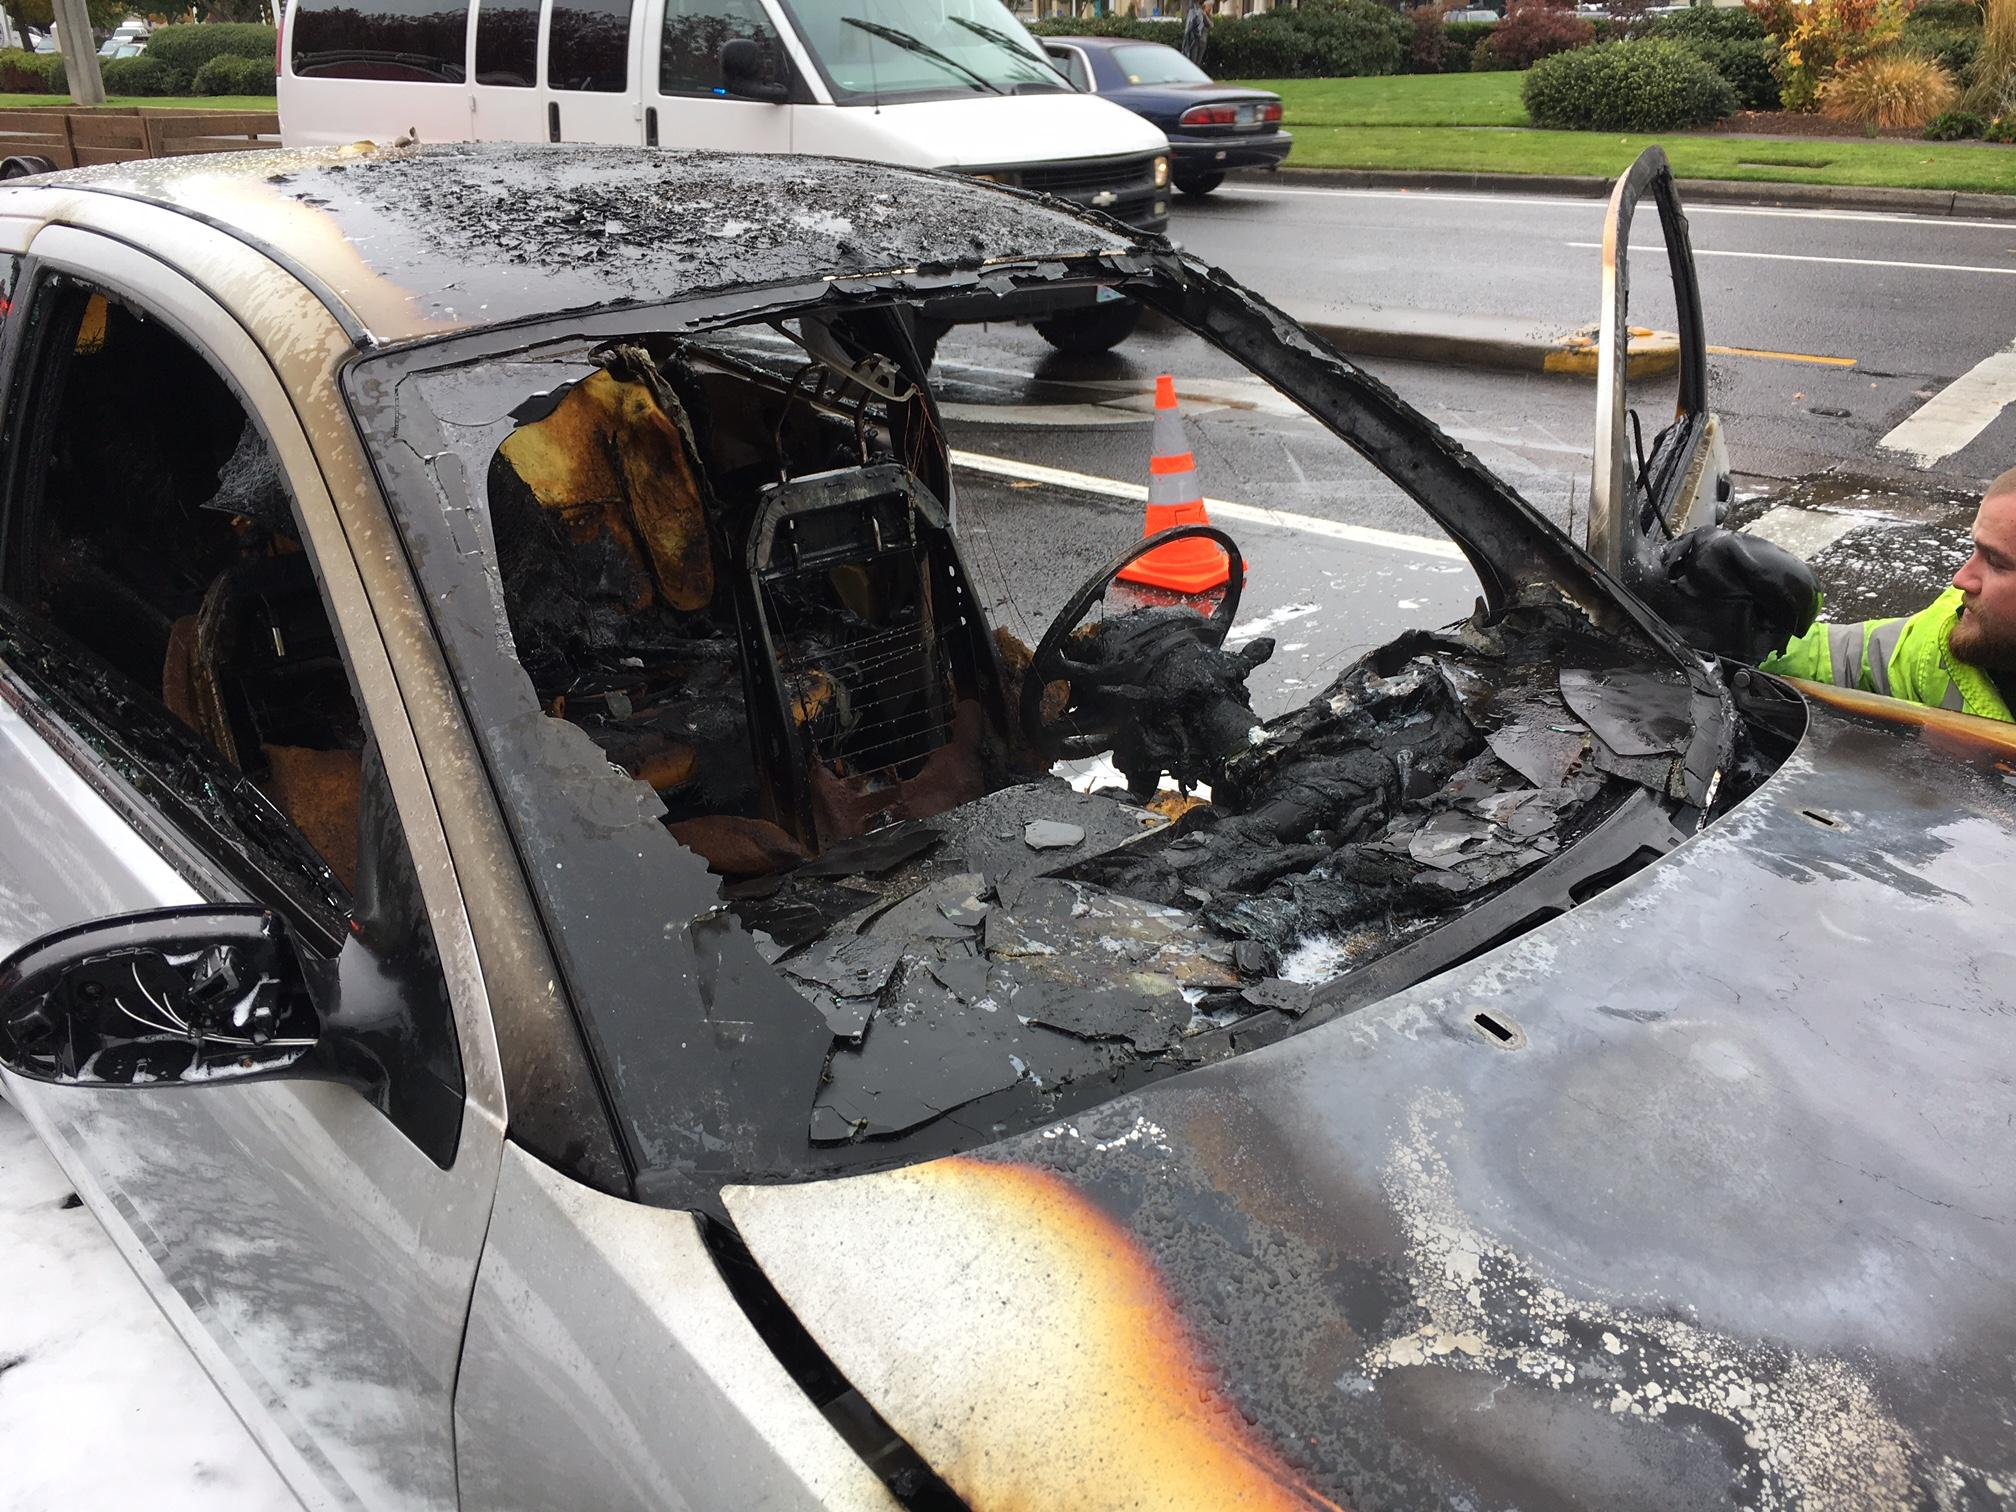 "Laura Hellman said she smelled smoke as she drove on Coburg Road. ""All of a sudden I saw a little puff of smoke coming out of the hood,"" she recalled. ""Then all of a sudden when I was stopped, it started to burst into flame. I grabbed my purse and got out of the car."" (SBG)"